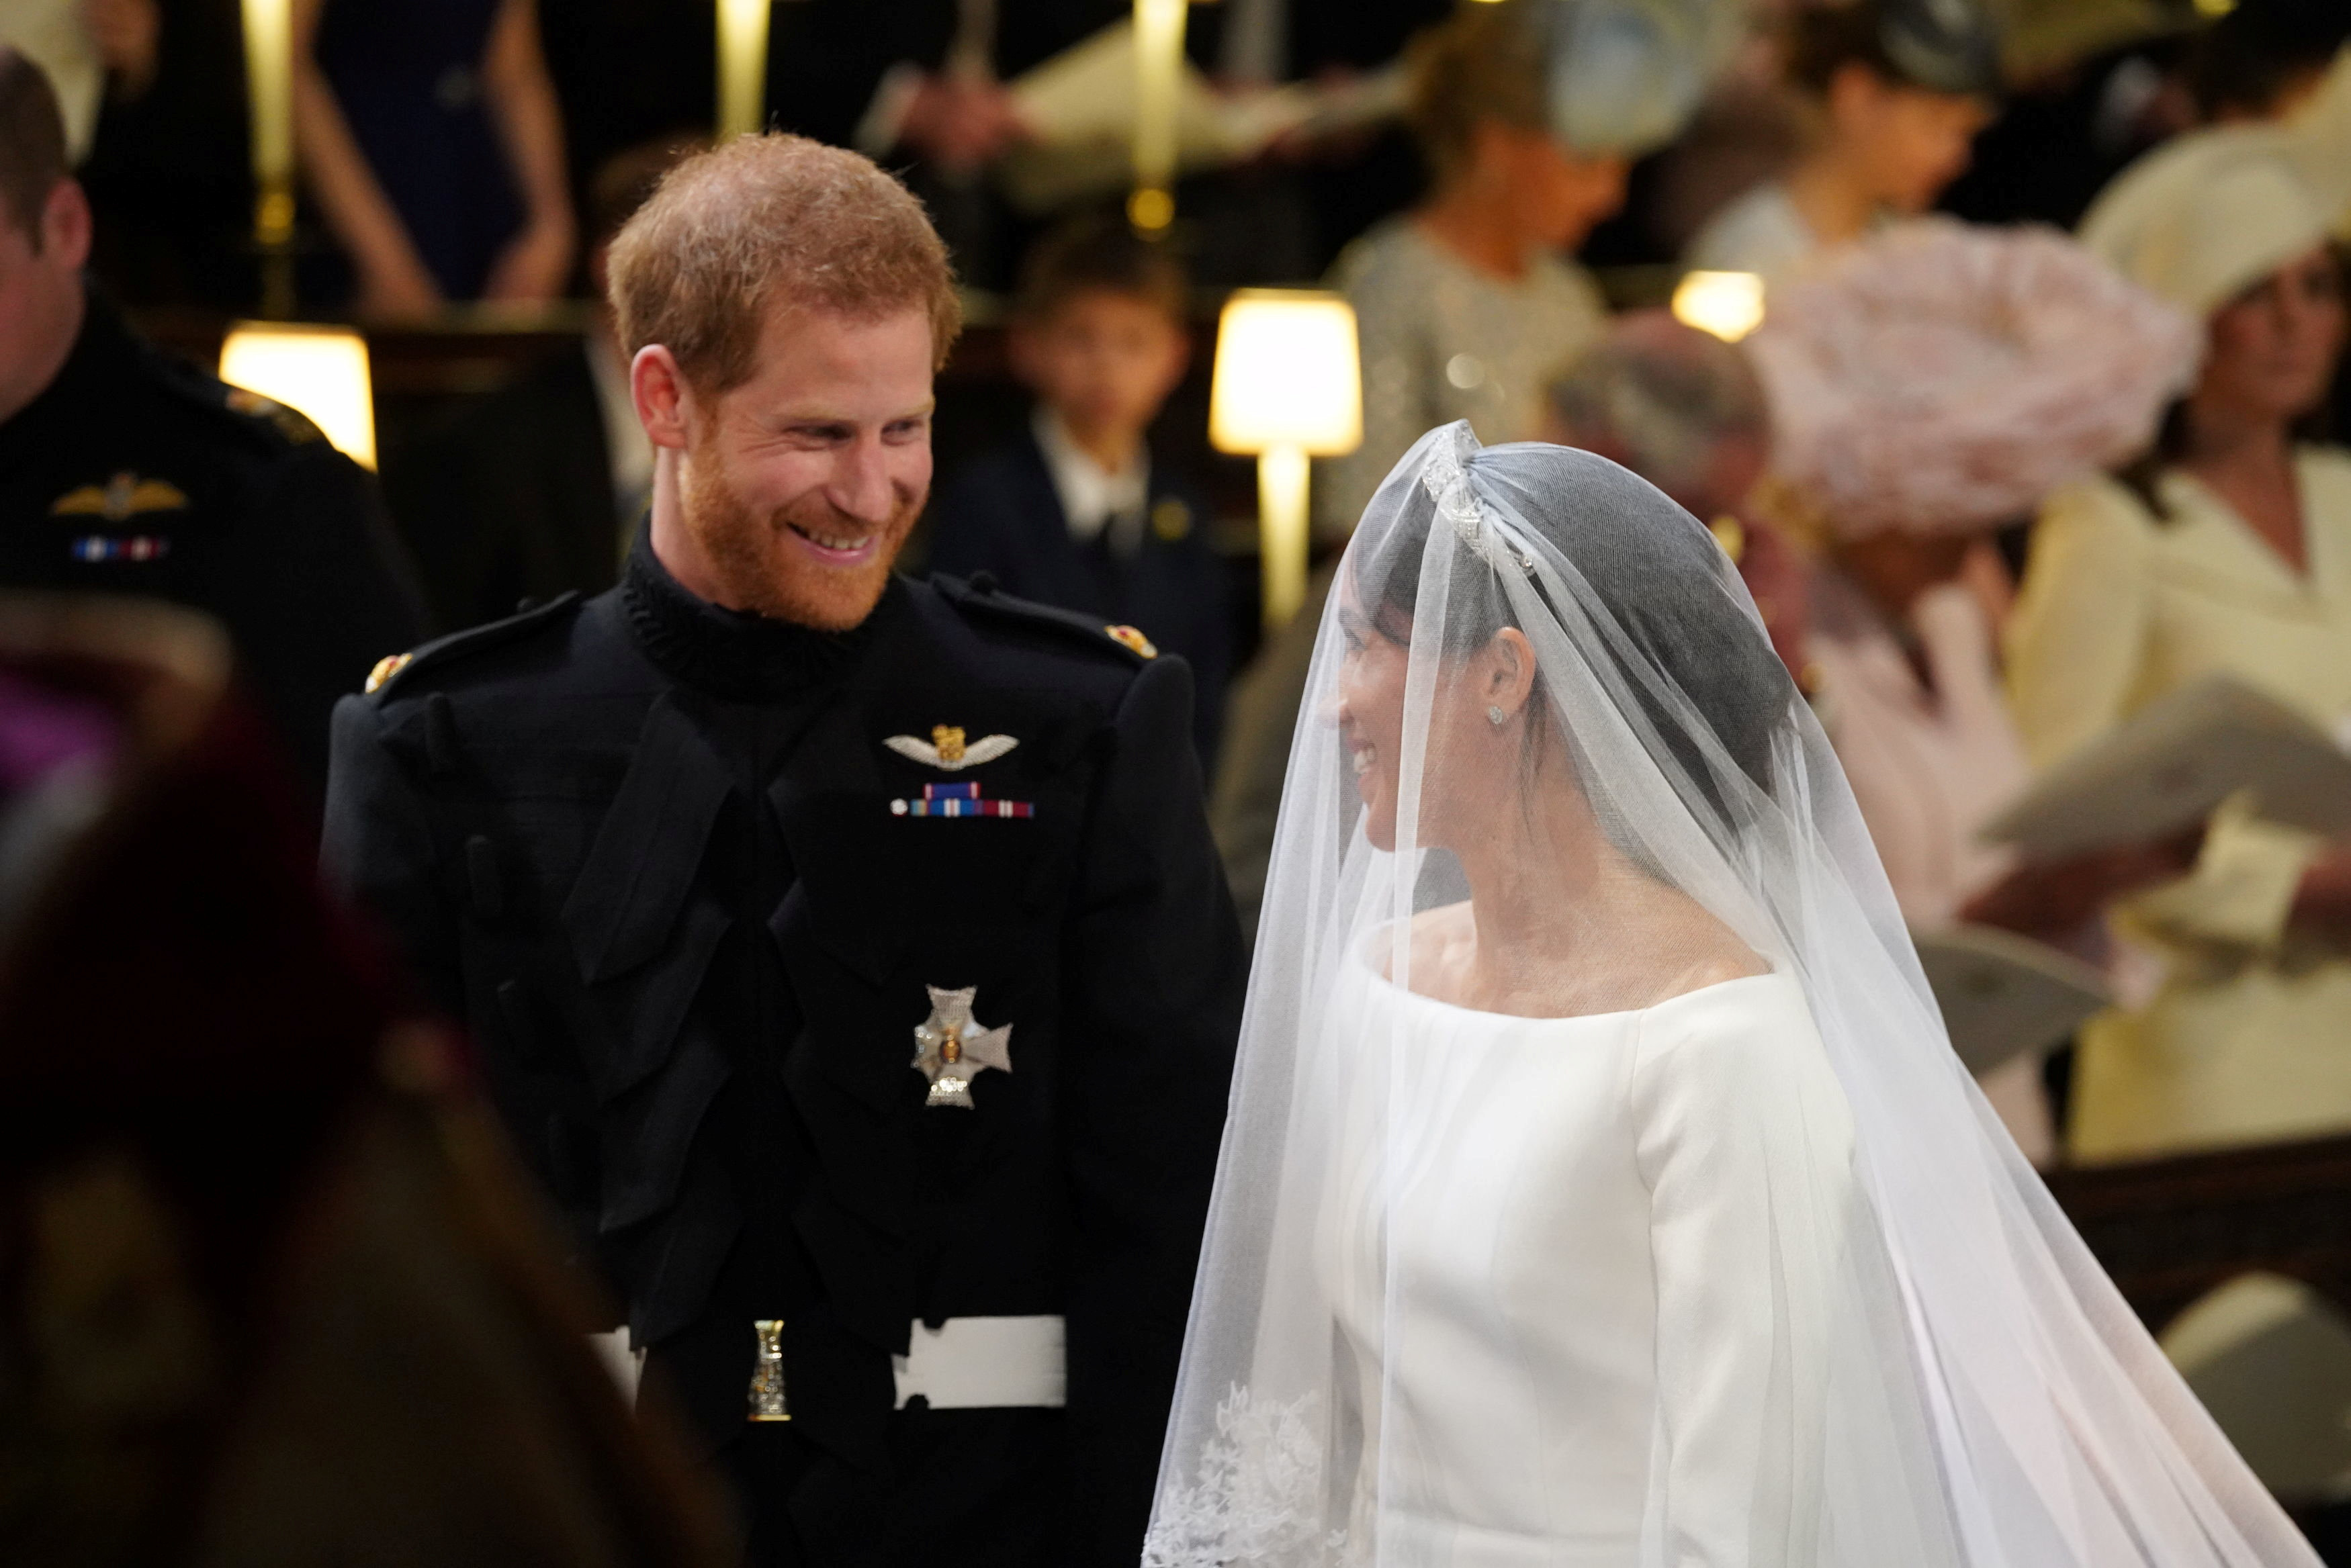 Prince Harry looks at his bride, Meghan Markle, as she arrives accompanied by the Prince of Wales in St George's Chapel at Windsor Castle for their wedding, in Windsor, Britain, on May 19, 2018. Photo: Reuters